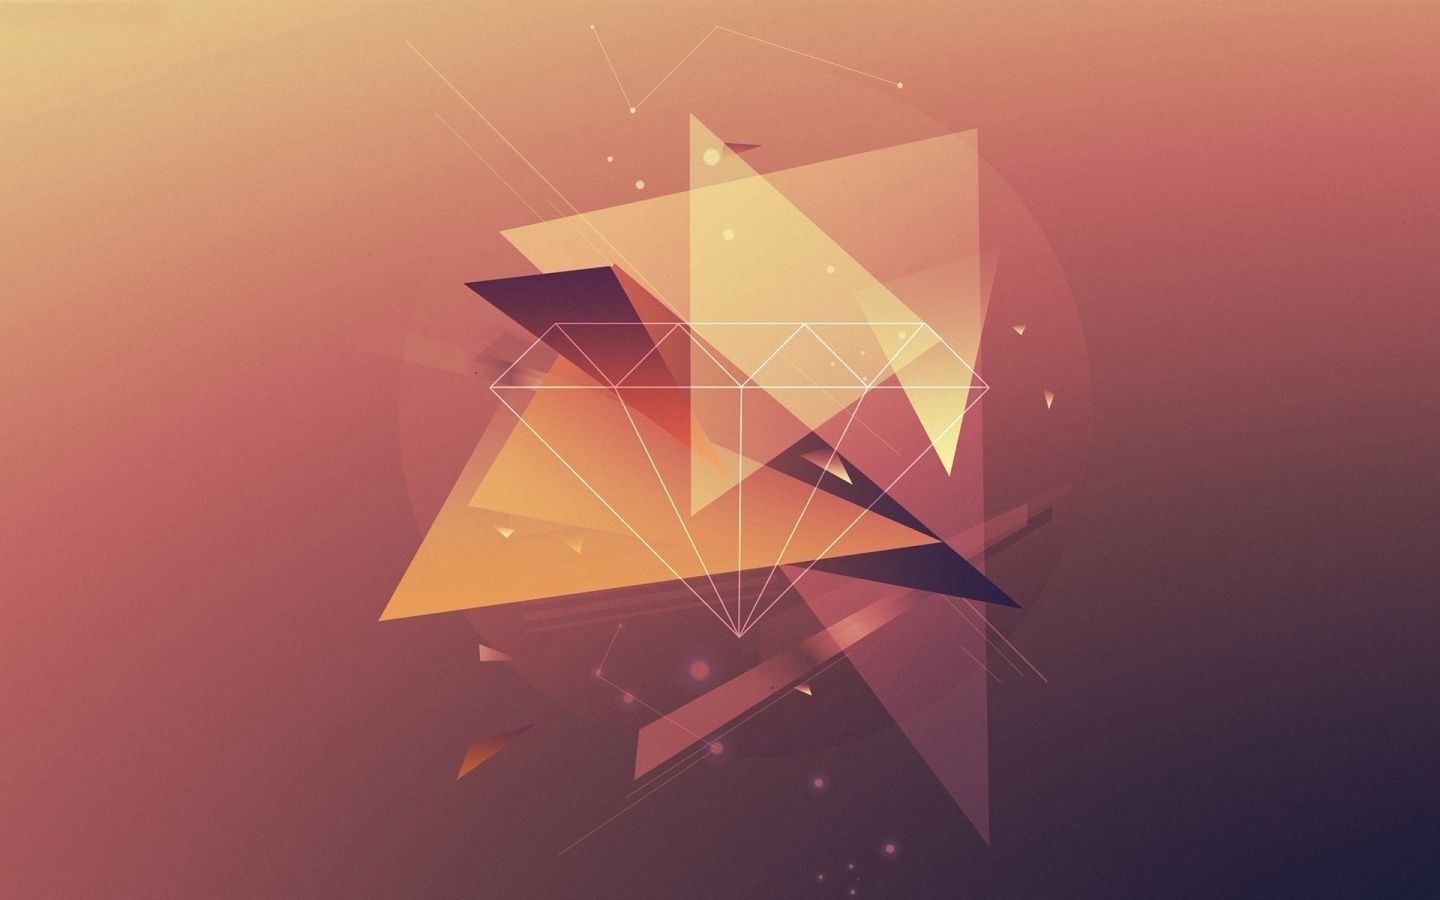 1440x900 Hd Geometric Wallpapers And Photos Hd 3d Wallpapers Abstract Art Geometric Abstract Geometric Background